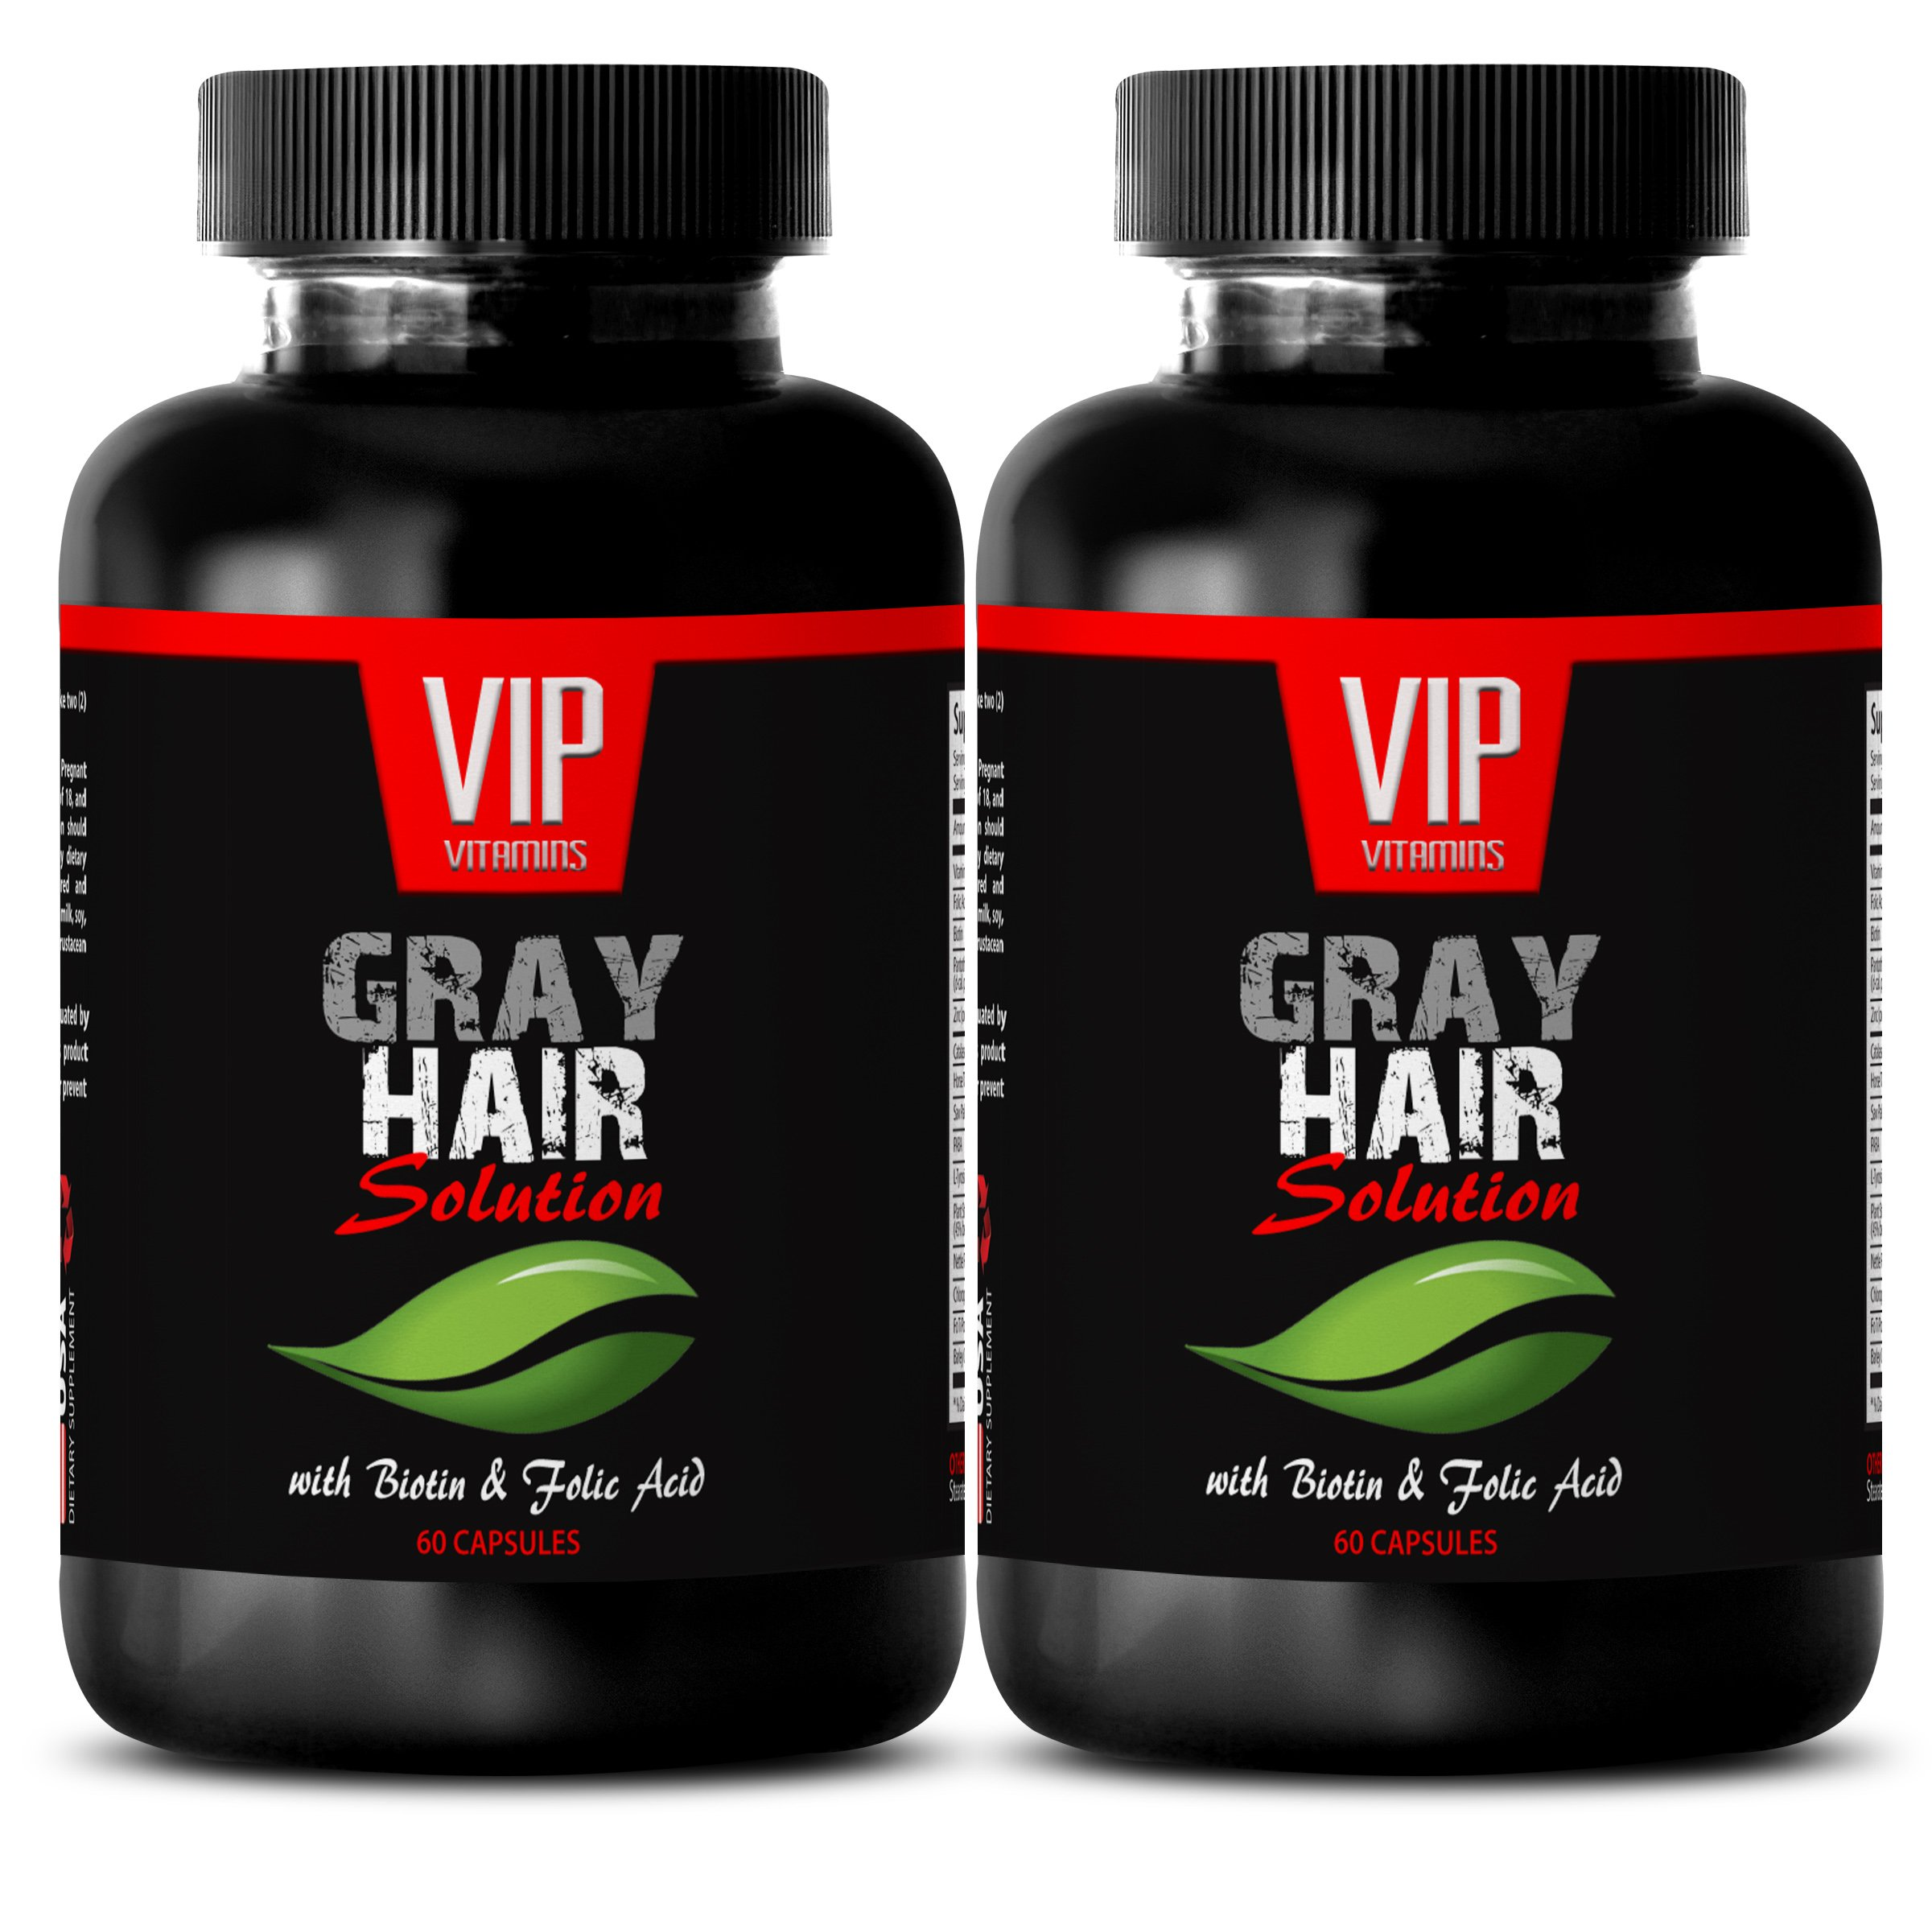 Biotin for Hair Growth - Gray Hair Solution - Hair vitamins for faster hair growth (2 Bottles 120 capsules)